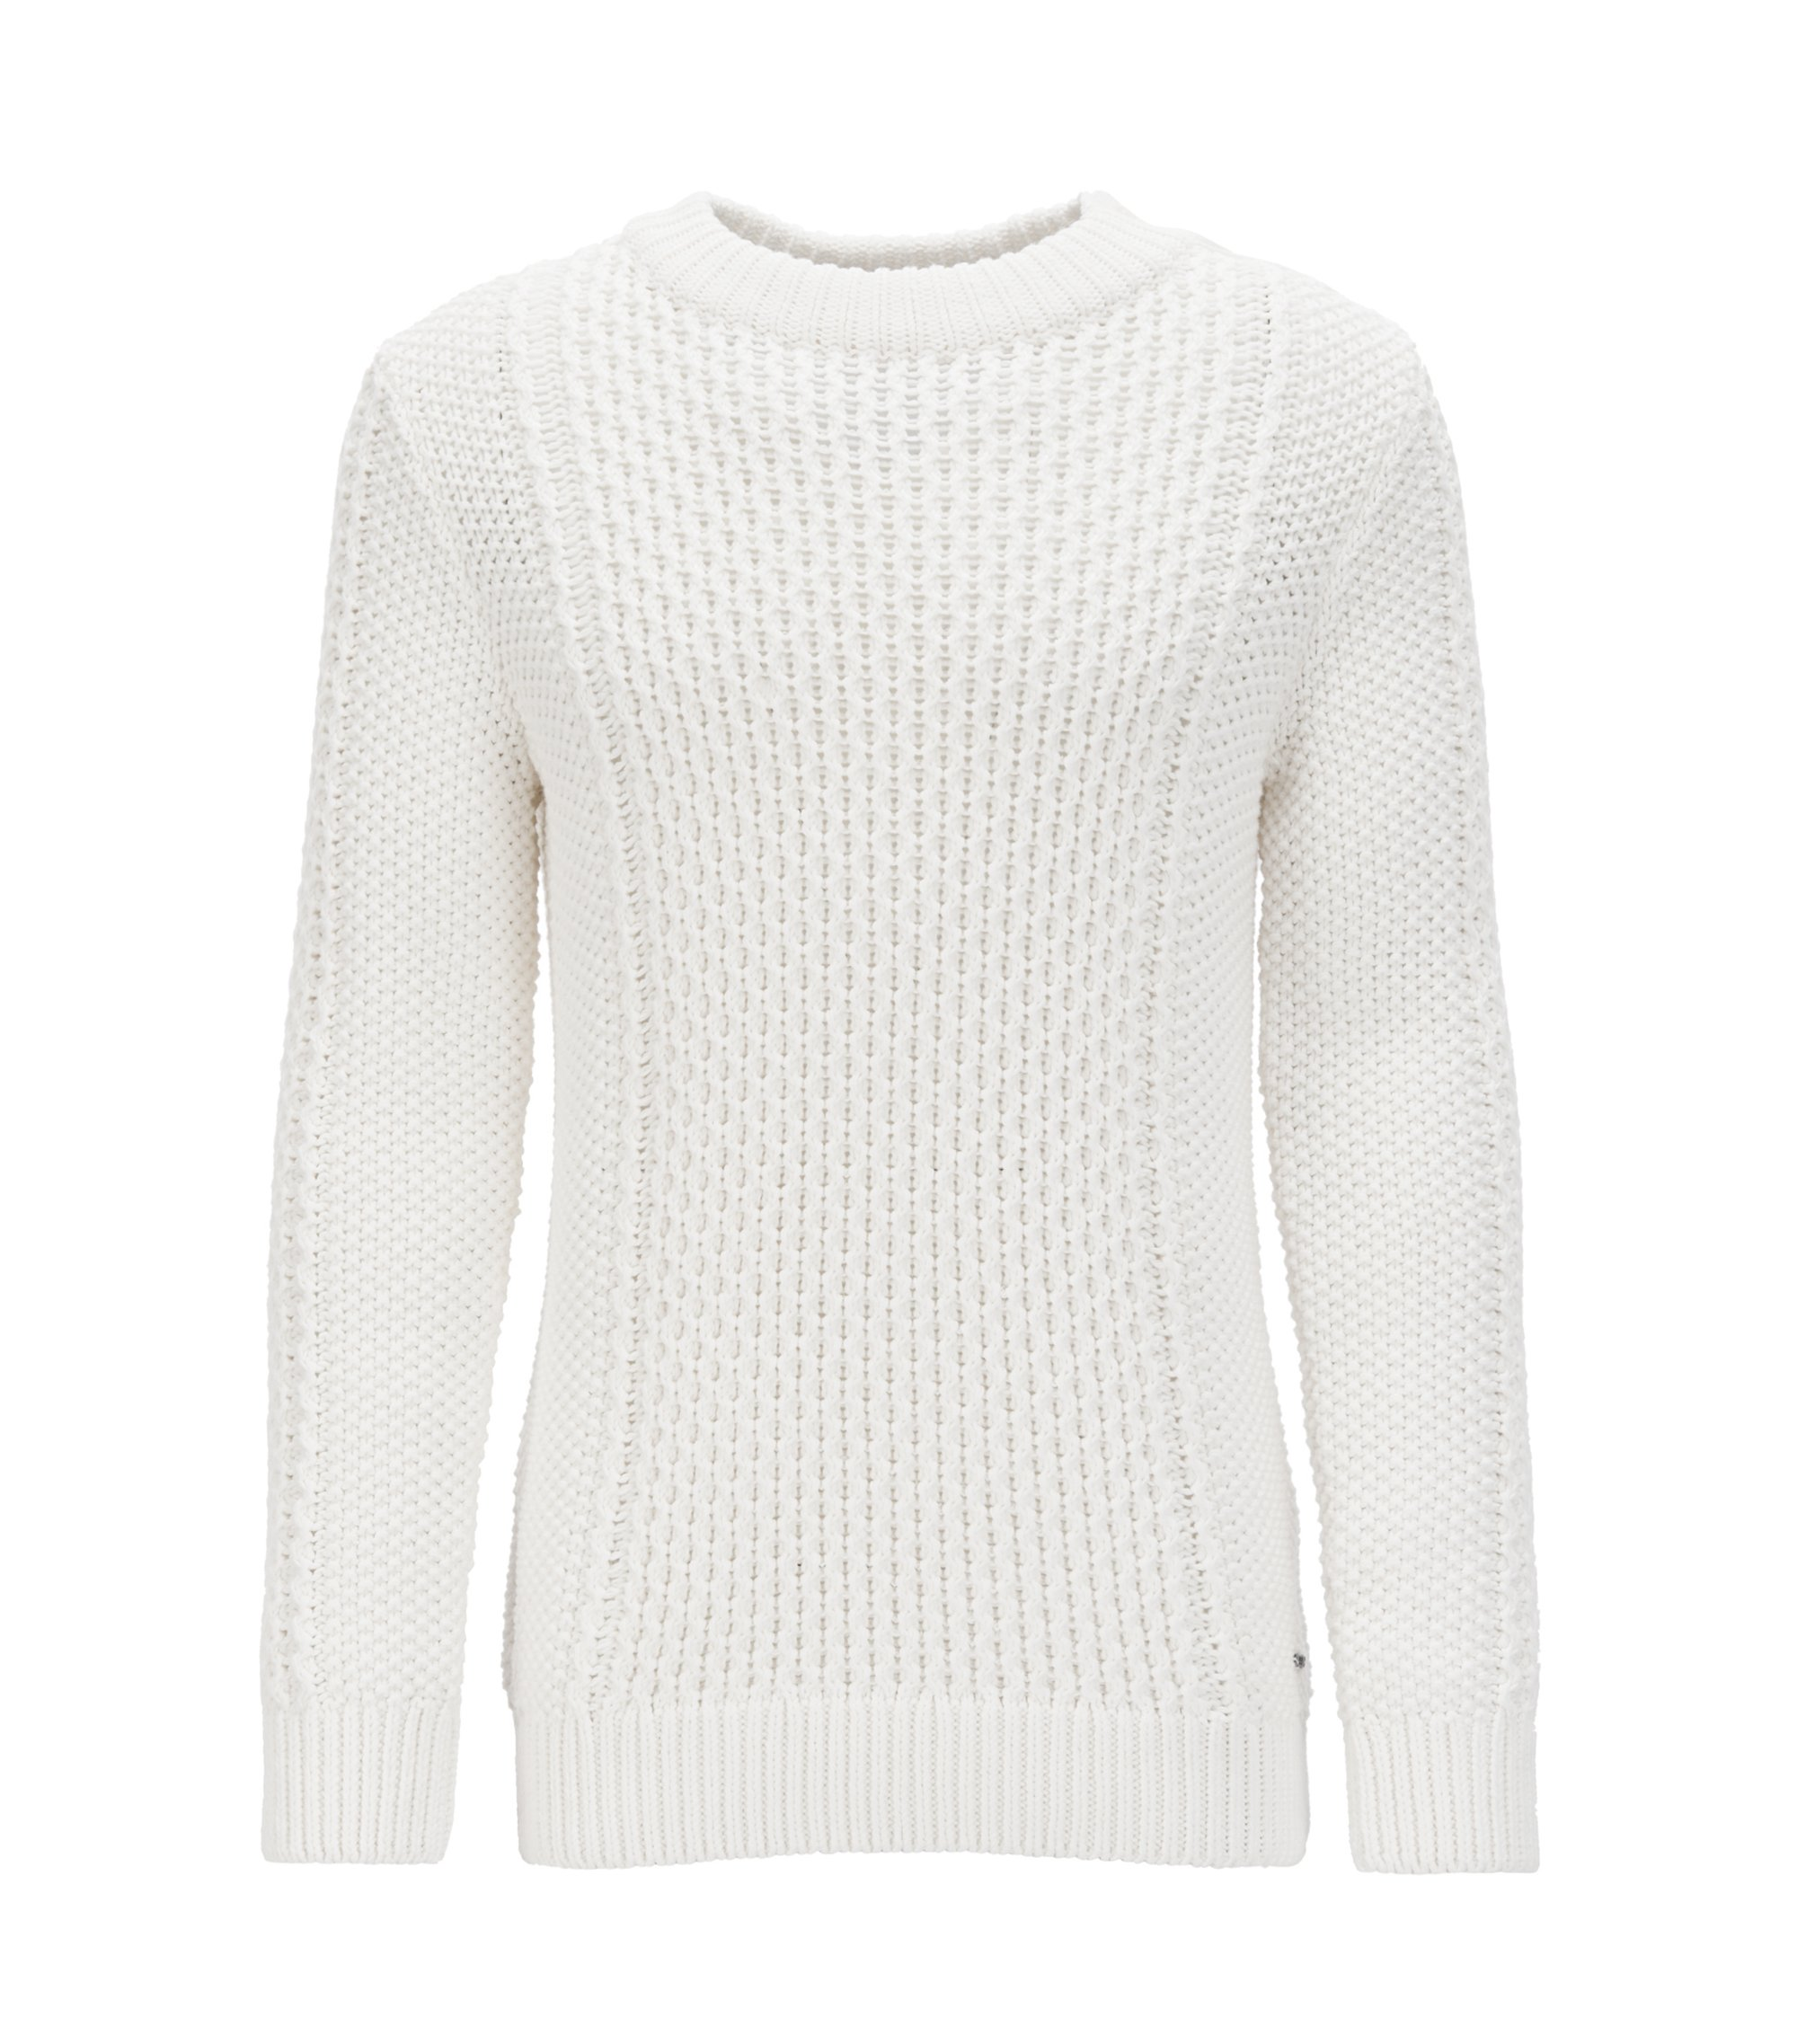 Cotton-blend cable-knit sweater with buttons, White